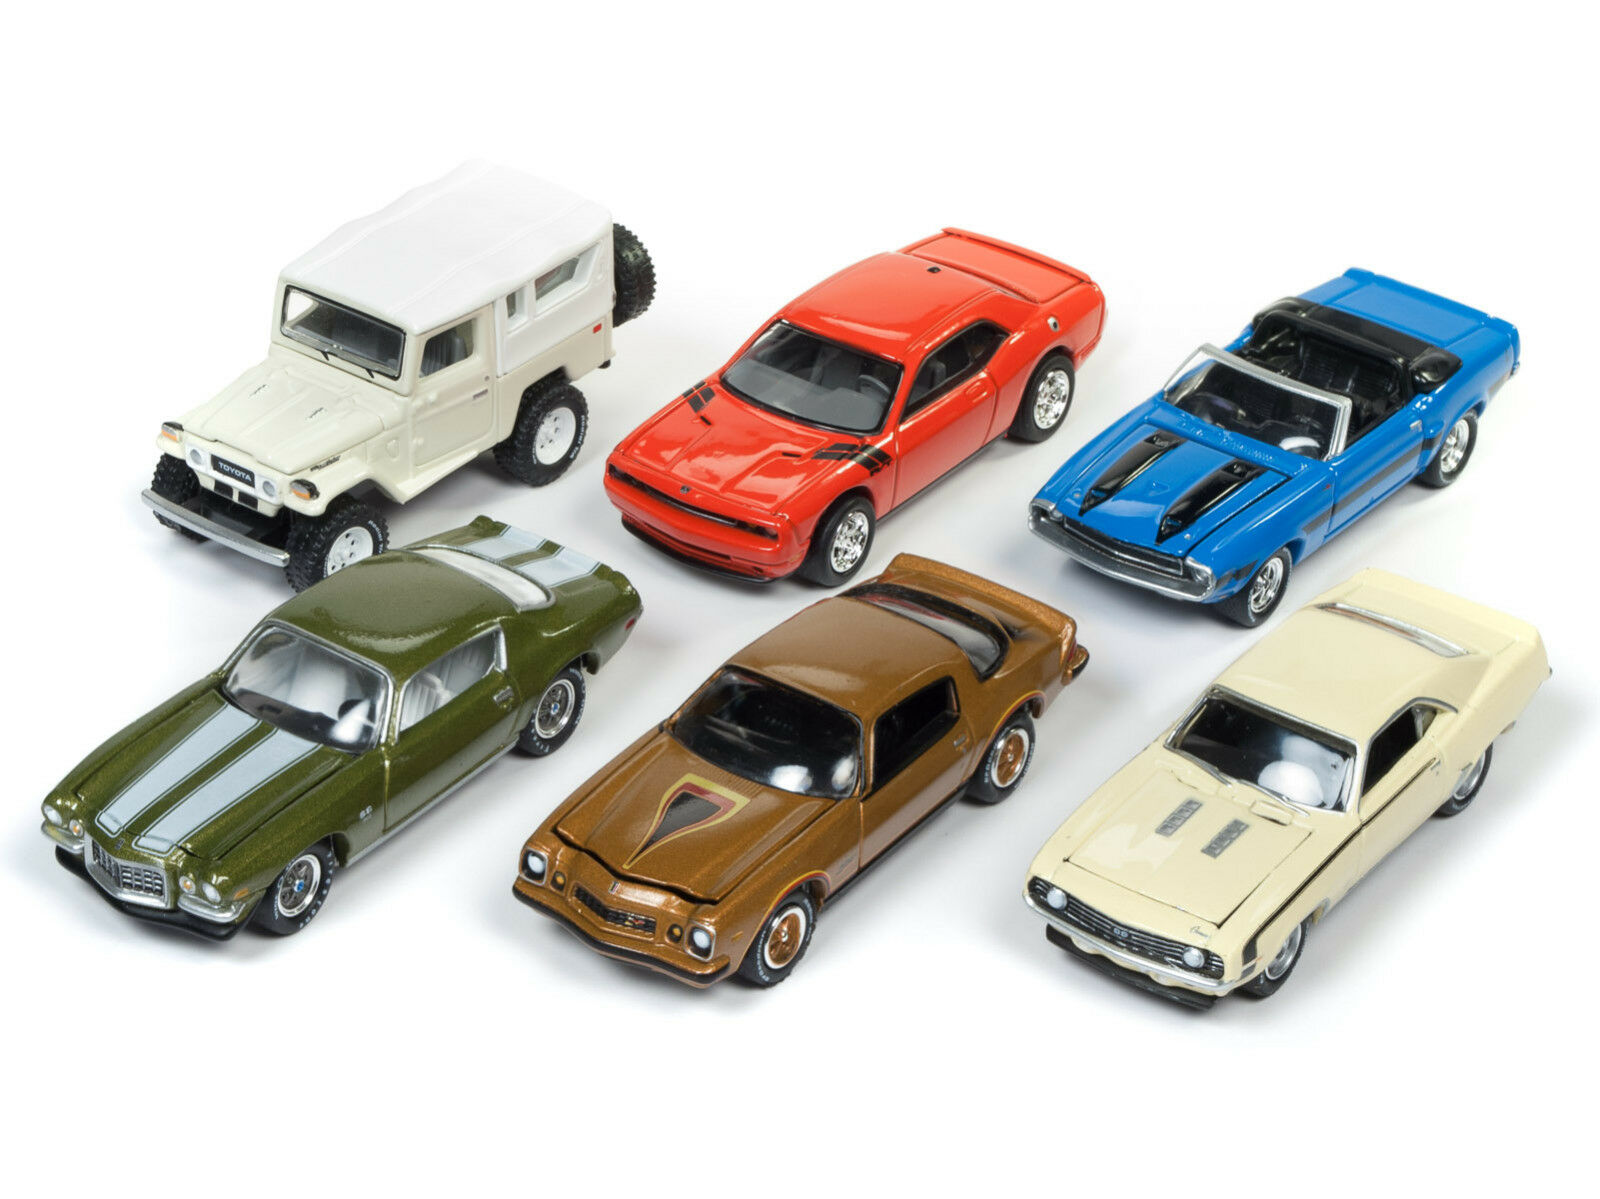 CLASSIC gold 2017 RELEASE 4 SET A OF OF OF 6 CARS 1 64 BY JOHNNY LIGHTNING JLCG012-A e7b5c2